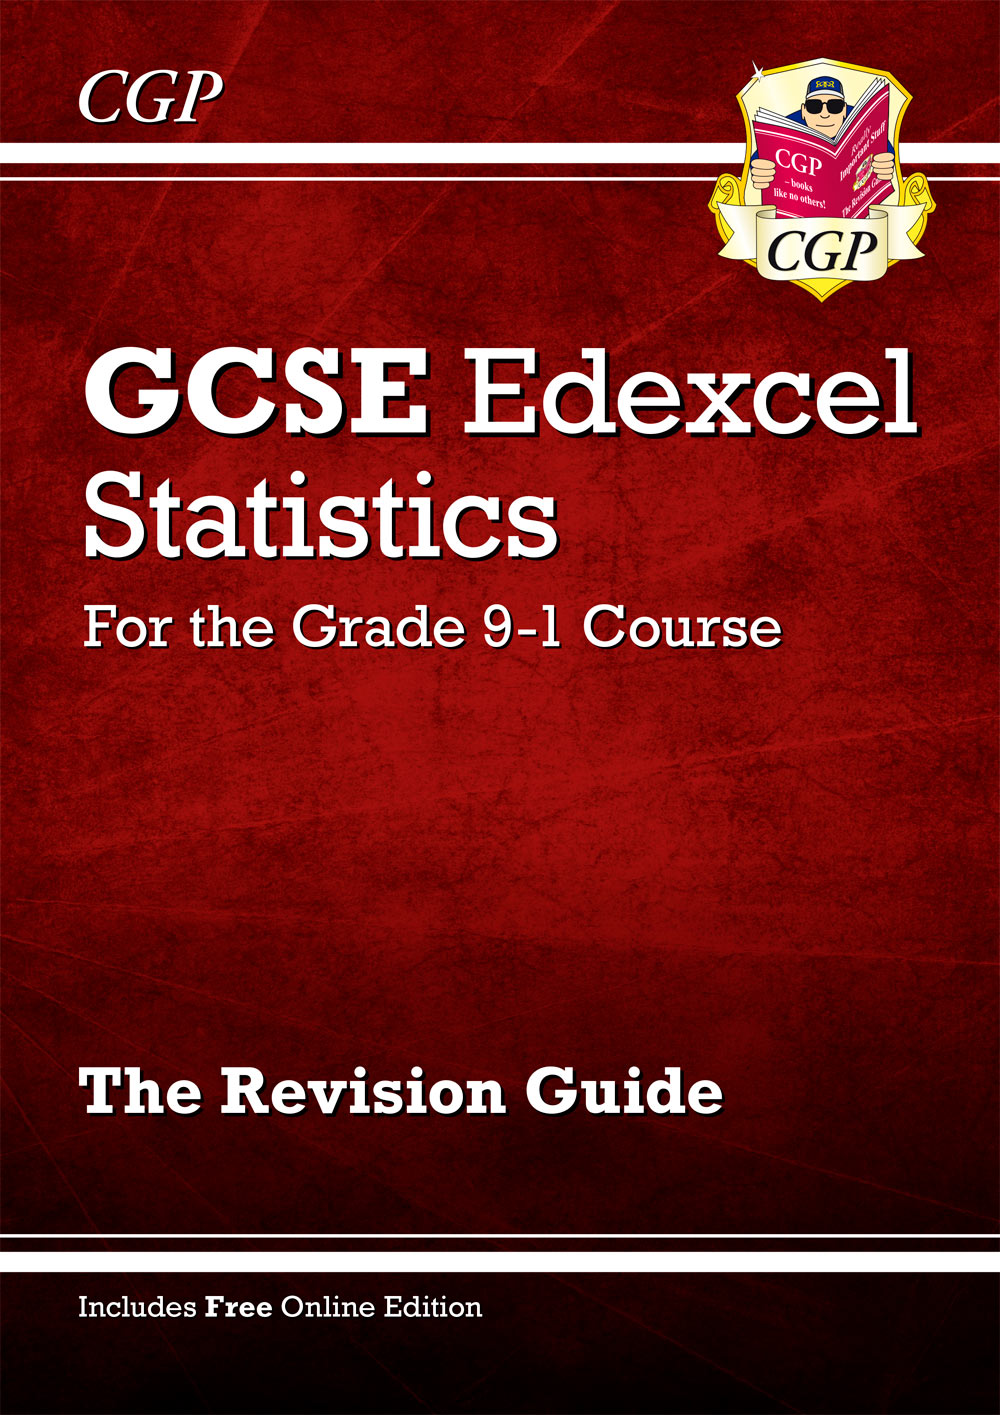 MSXR41 - New GCSE Statistics Edexcel Revision Guide - for the Grade 9-1 Course (with Online Edition)